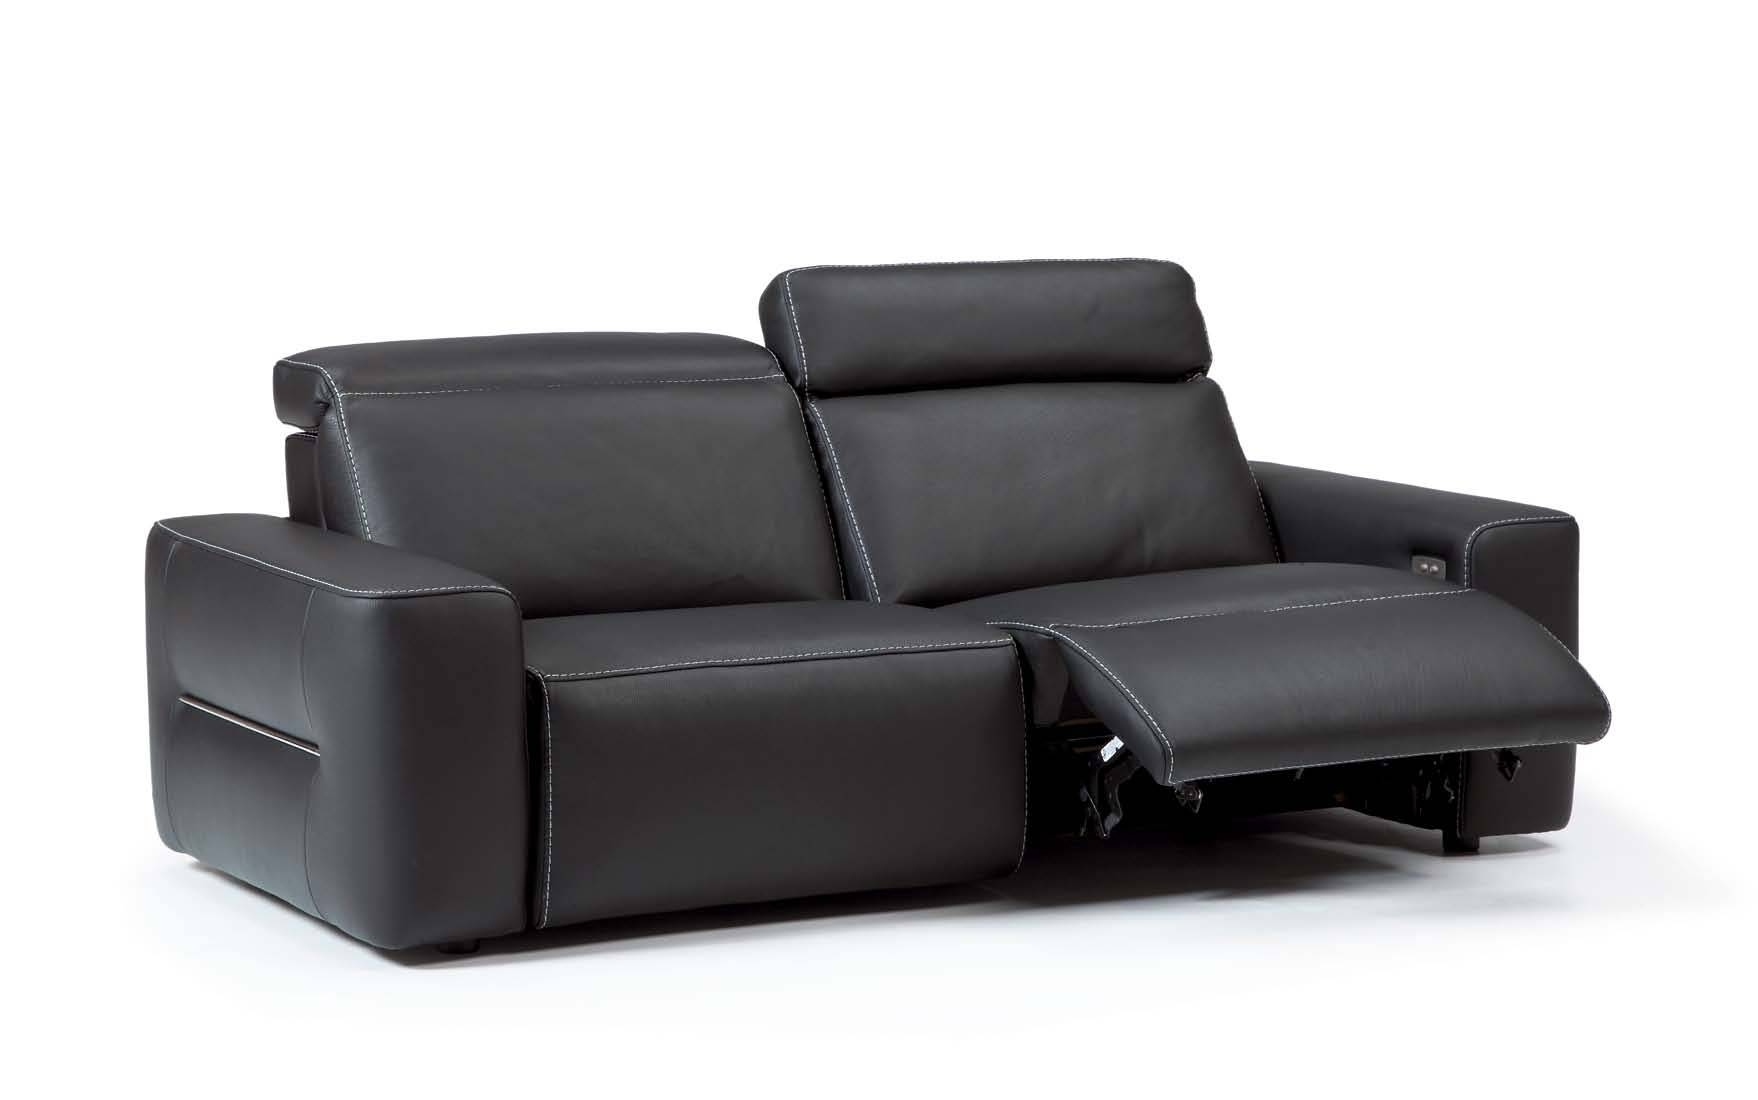 Sofas Center : Ashbourne Two Seater Recliner Sofa Hsl Sofa Ascot in 2 Seat Recliner Sofas (Image 19 of 30)